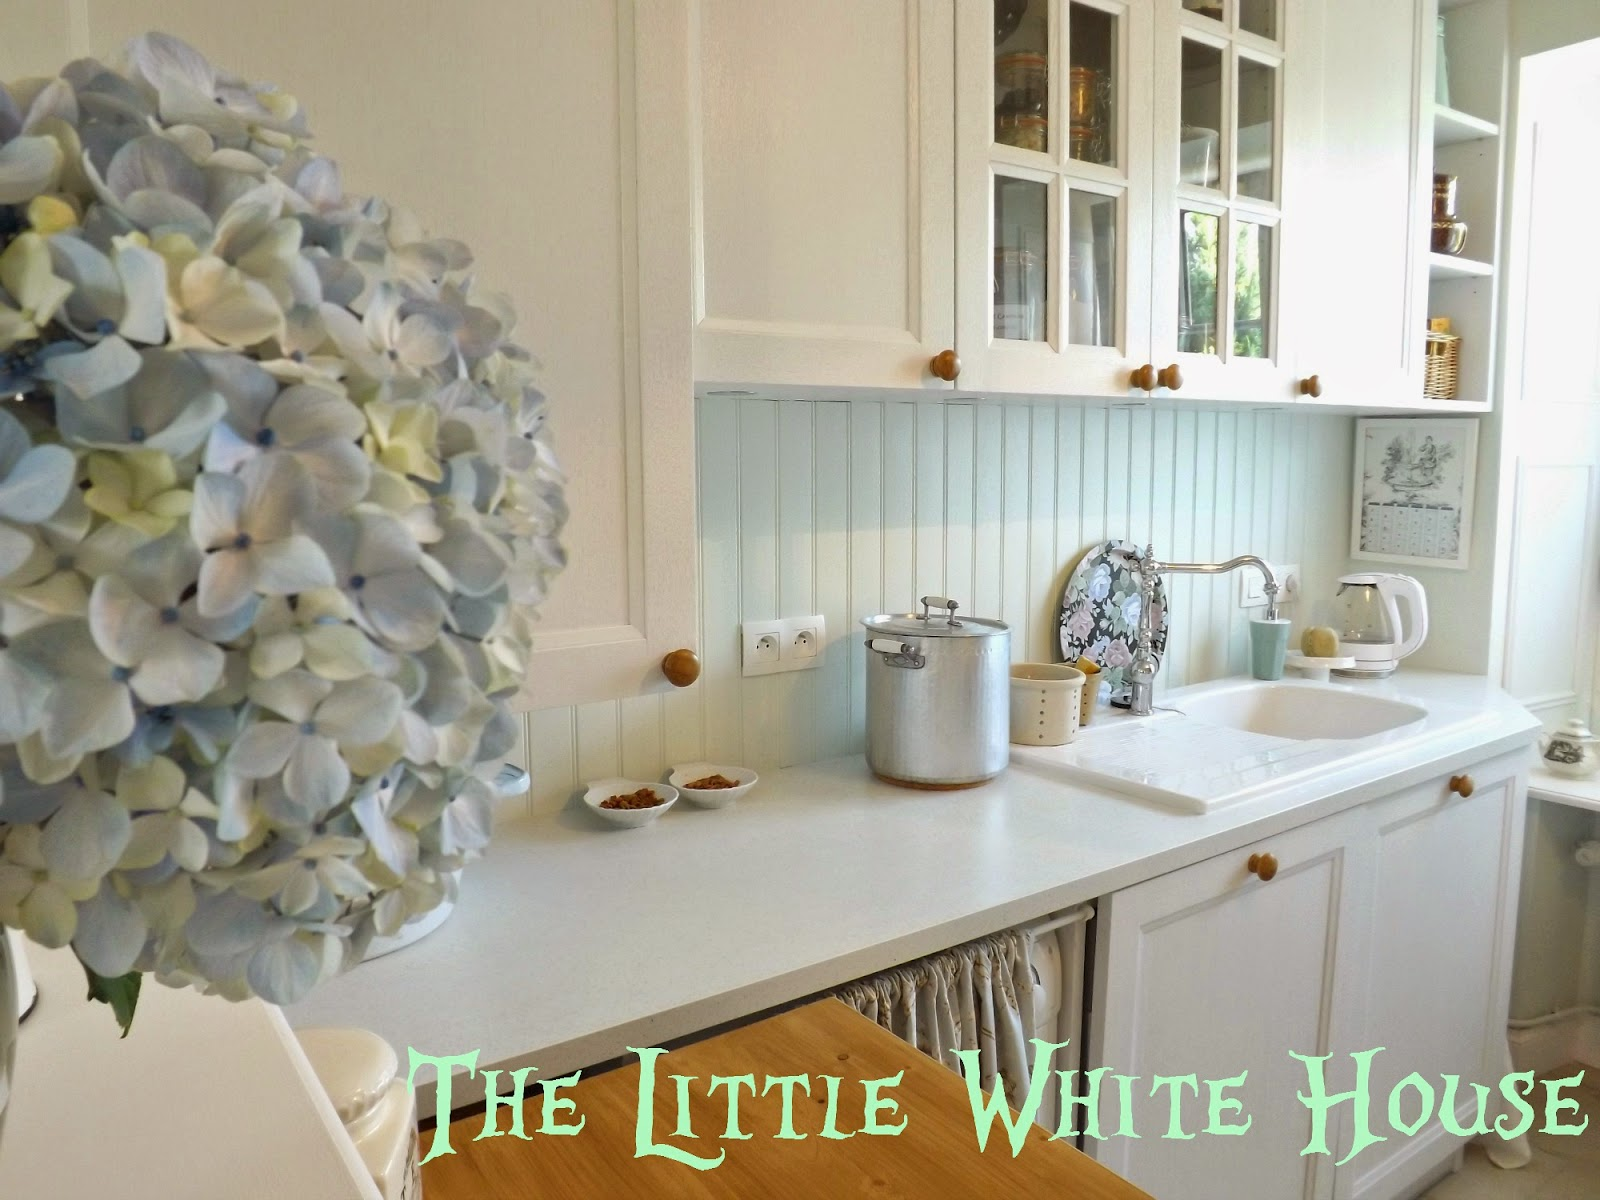 http://thelittlewhitehouseontheseaside.blogspot.fr/2014/07/this-is-how-countertop-disappear.html